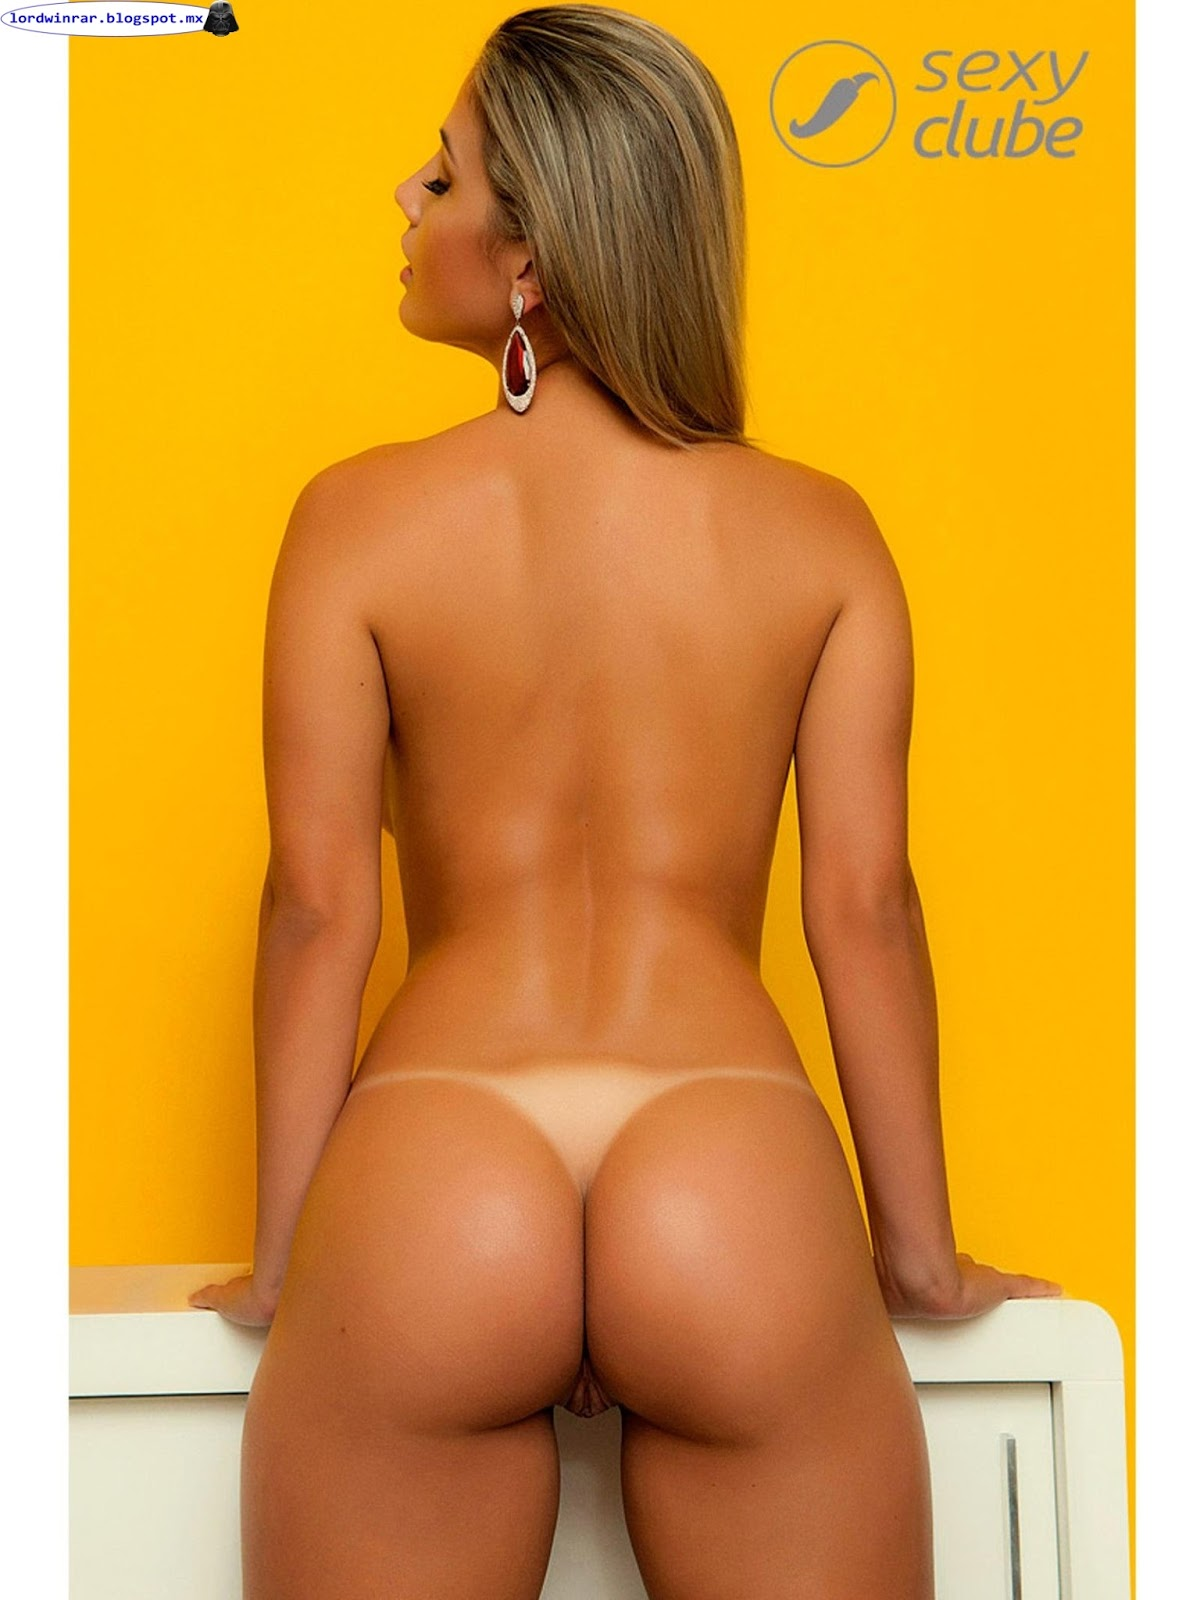 Tan Line Butts